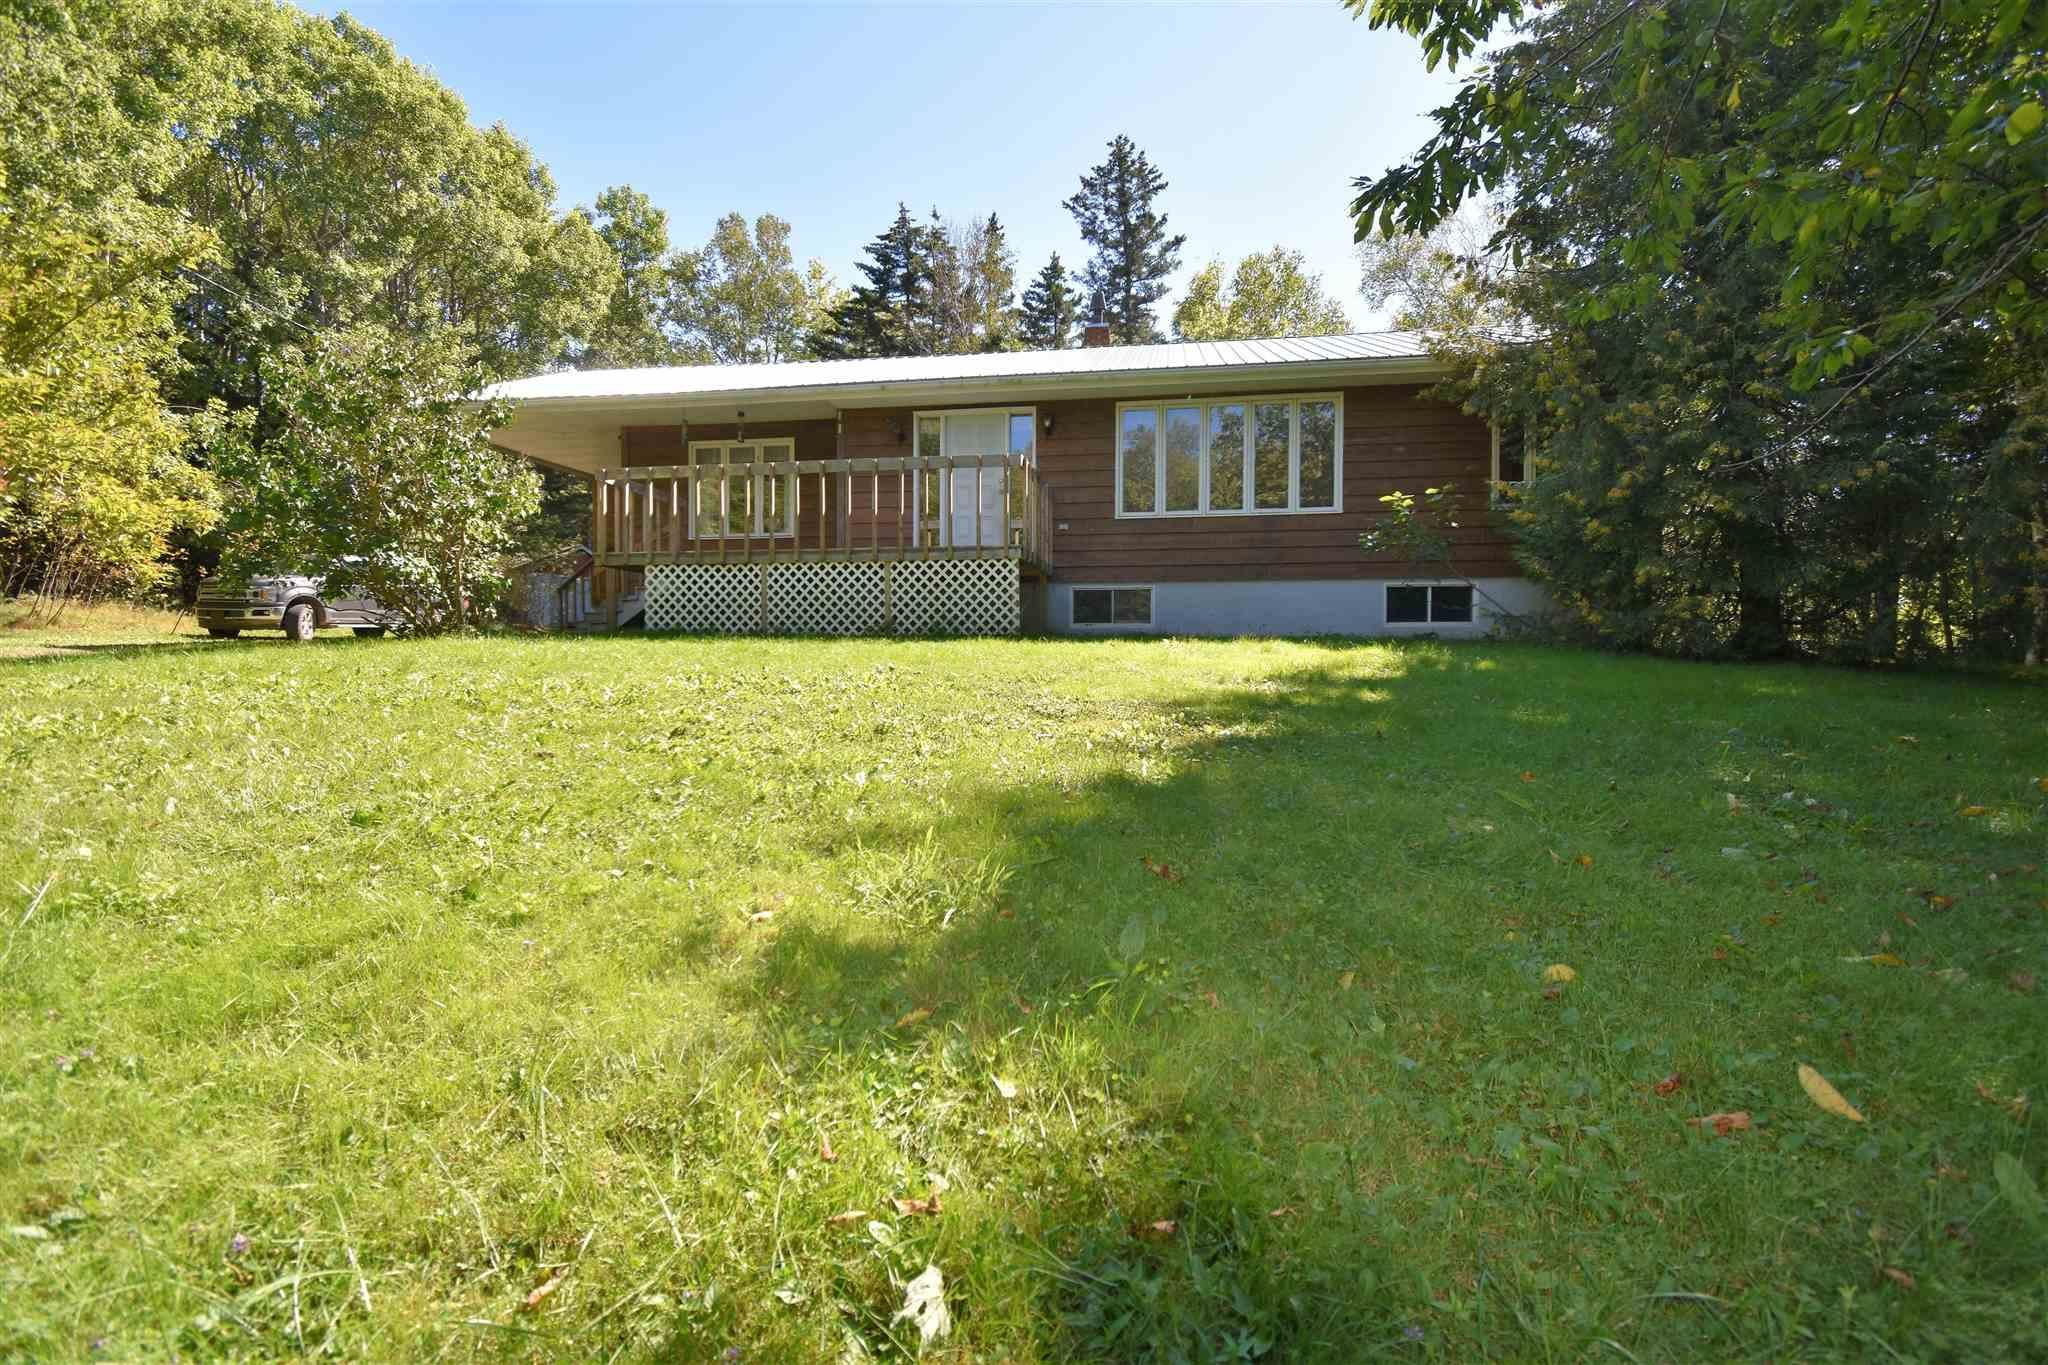 Main Photo: 9234 HIGHWAY 101 in Brighton: 401-Digby County Residential for sale (Annapolis Valley)  : MLS®# 202123659